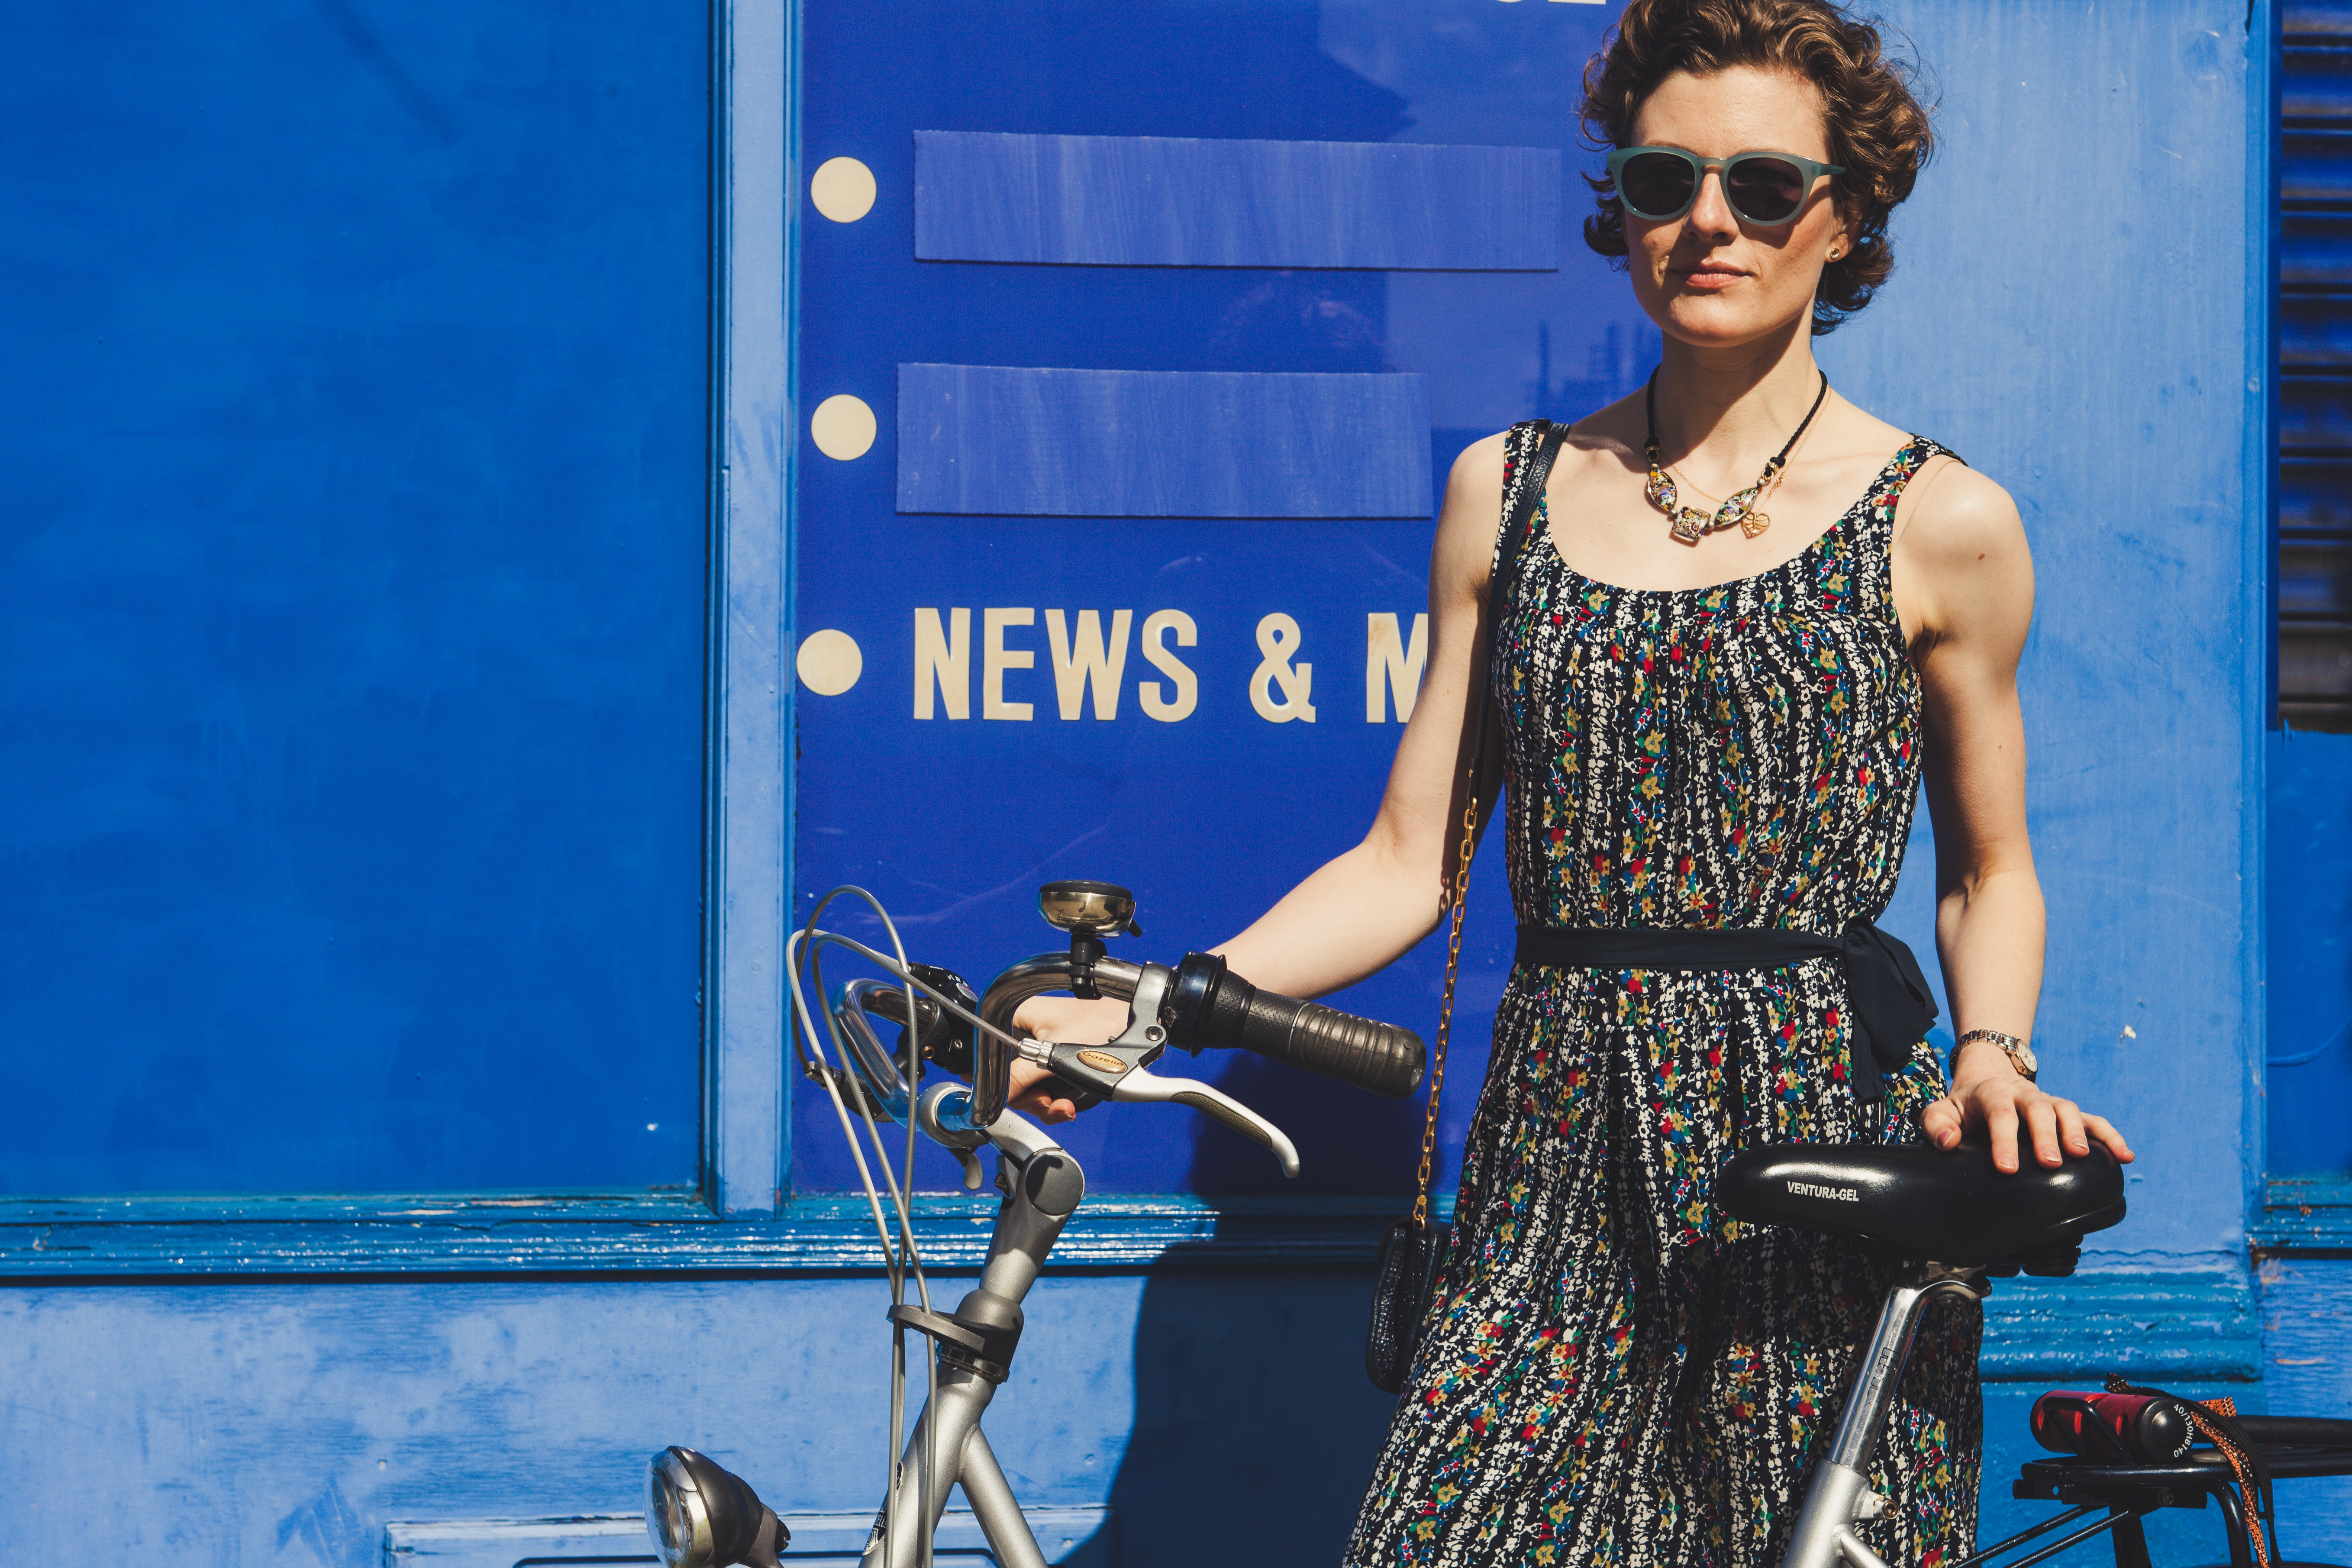 A woman wearing a floral print dress on a sunny day standing against a blue wall, holding her bicycle, in London